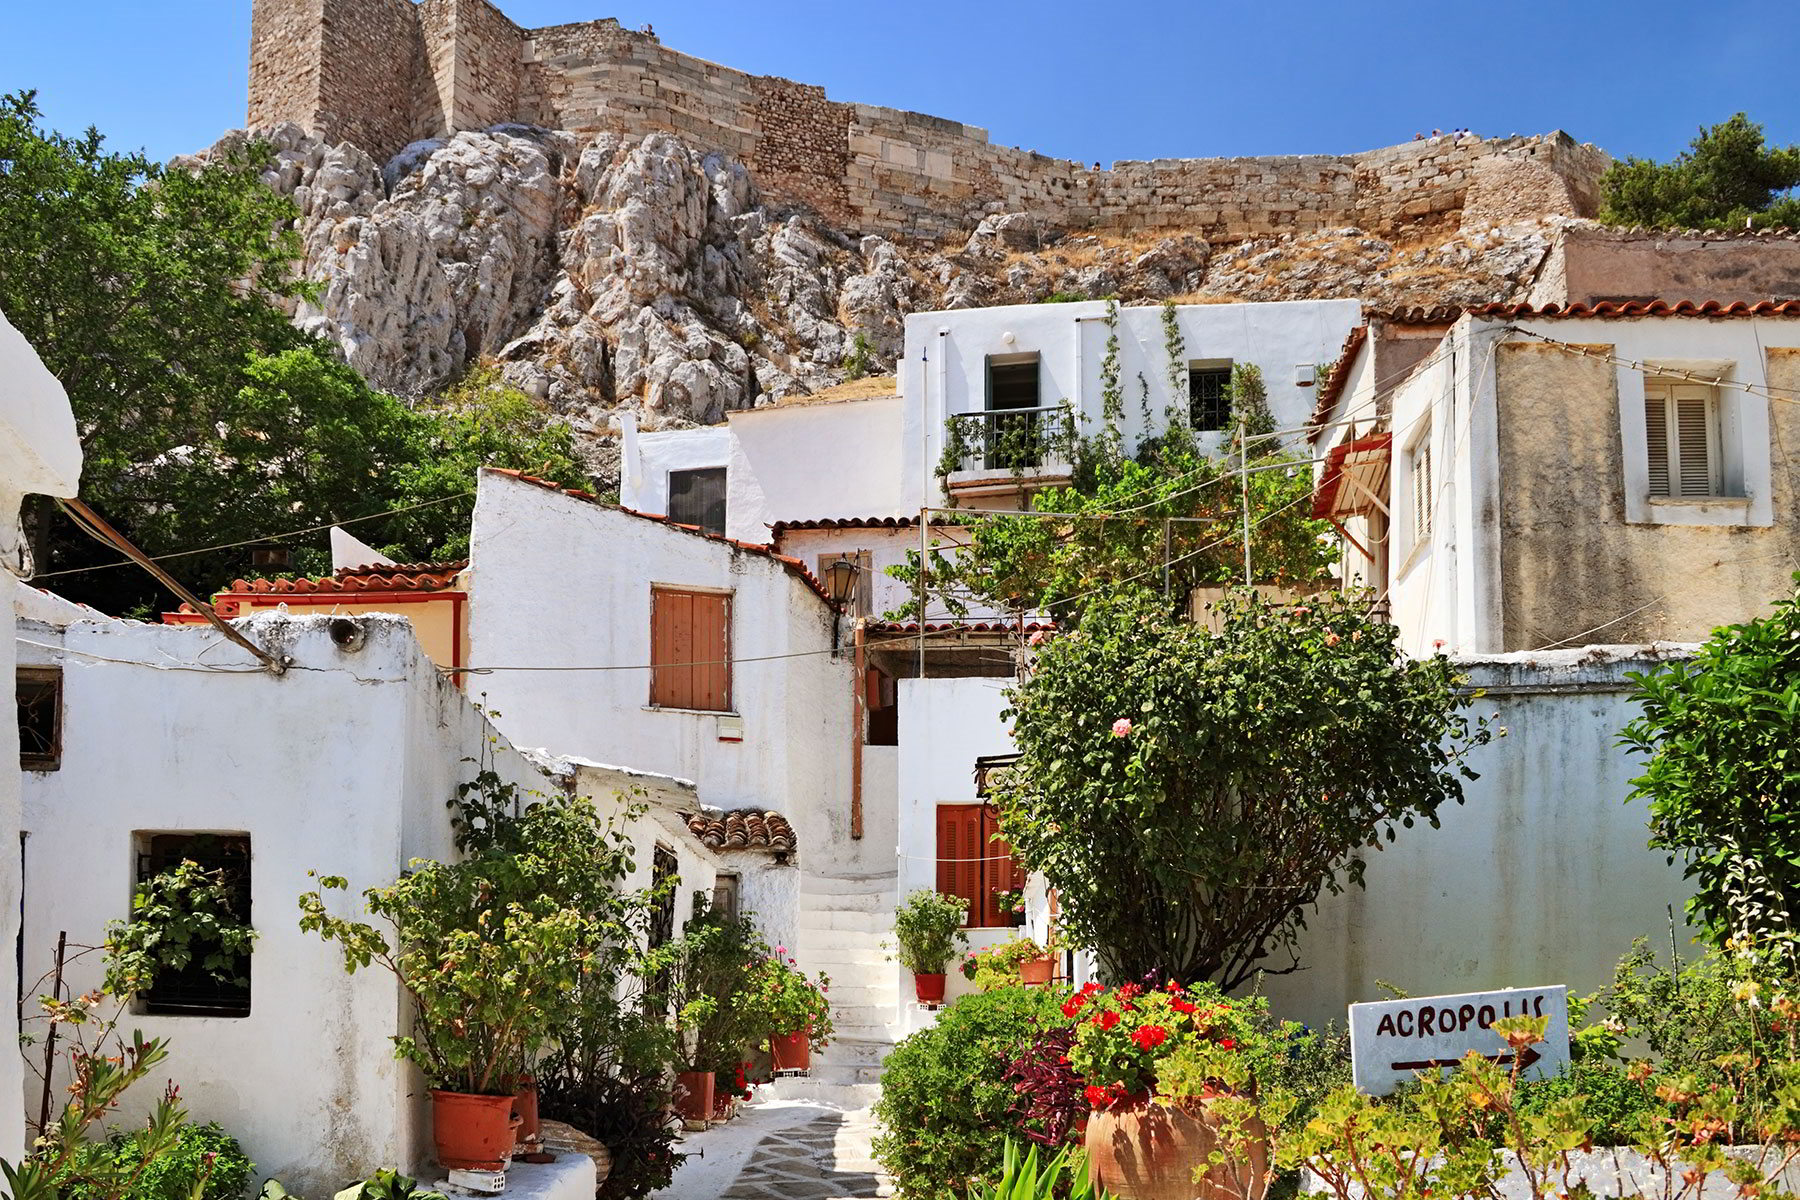 The neighbourhood of Anafiotika under the Acropolis